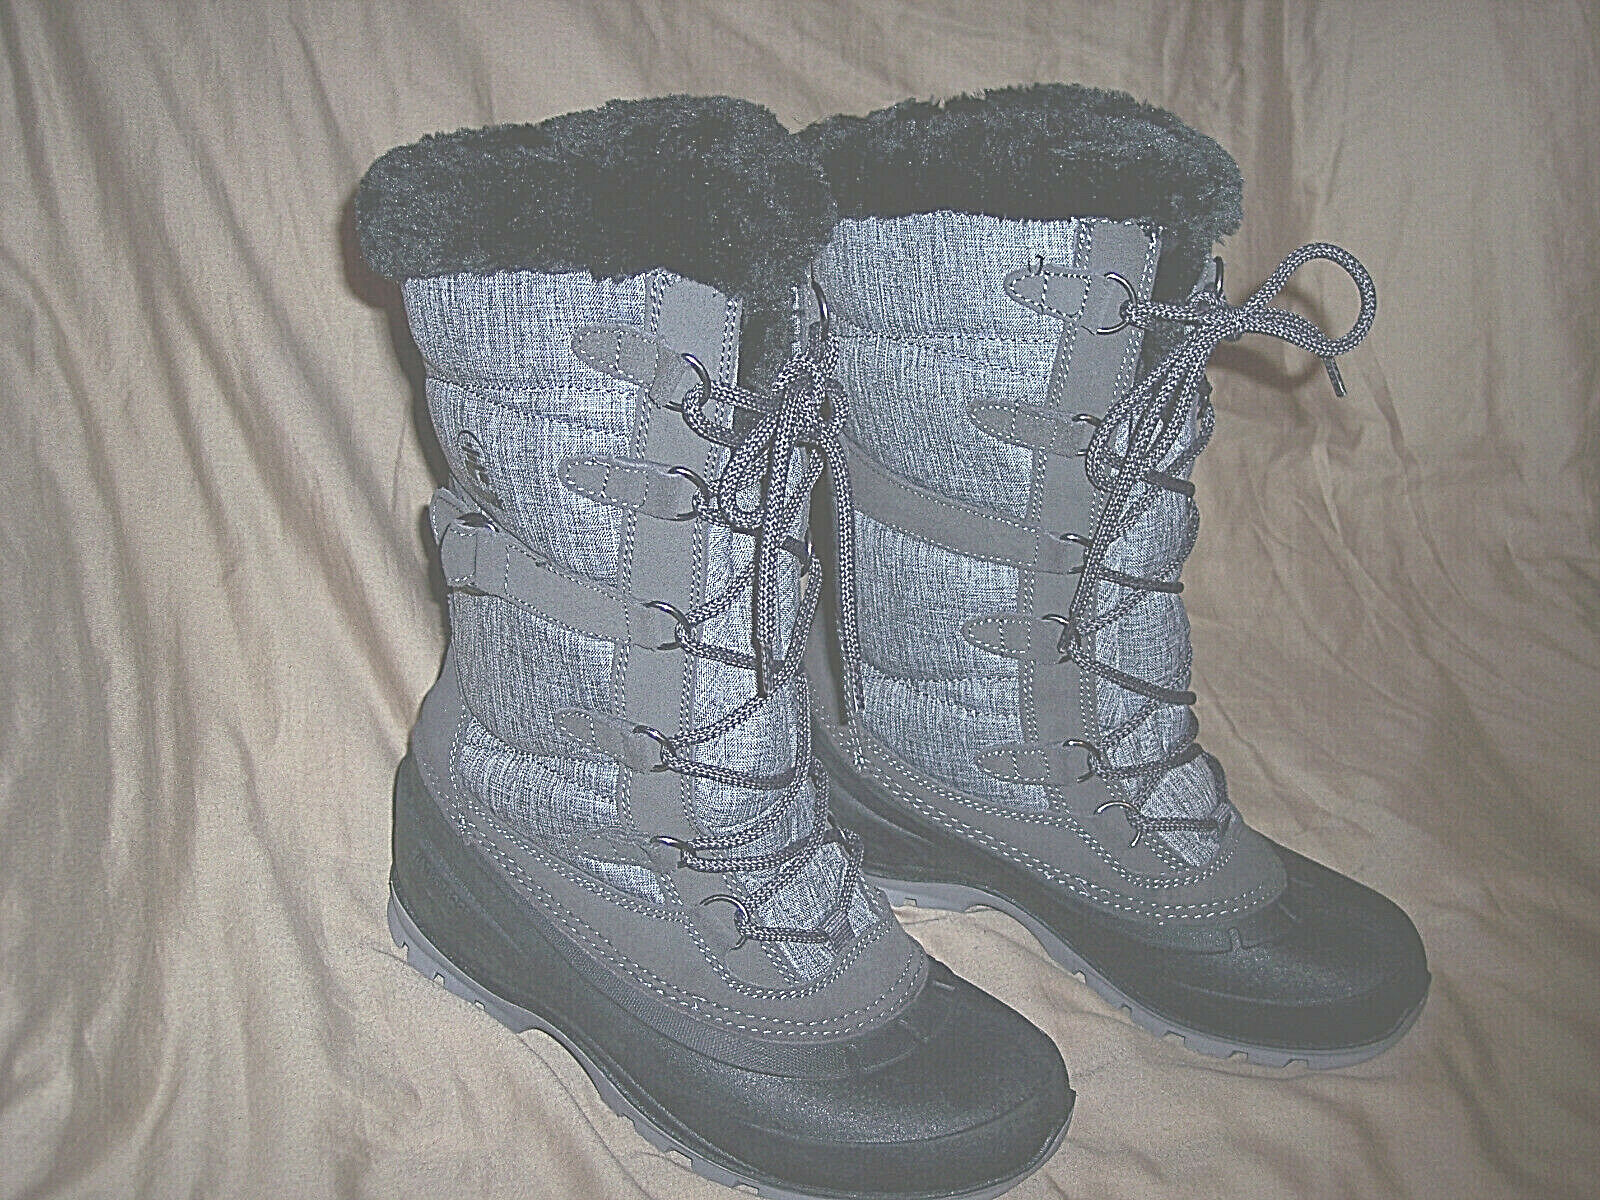 Womens Snow Boots 8 Snovalley2 Boots Insulated Cold Weather Weather Weather Boots -40 Waterproof 6687c5